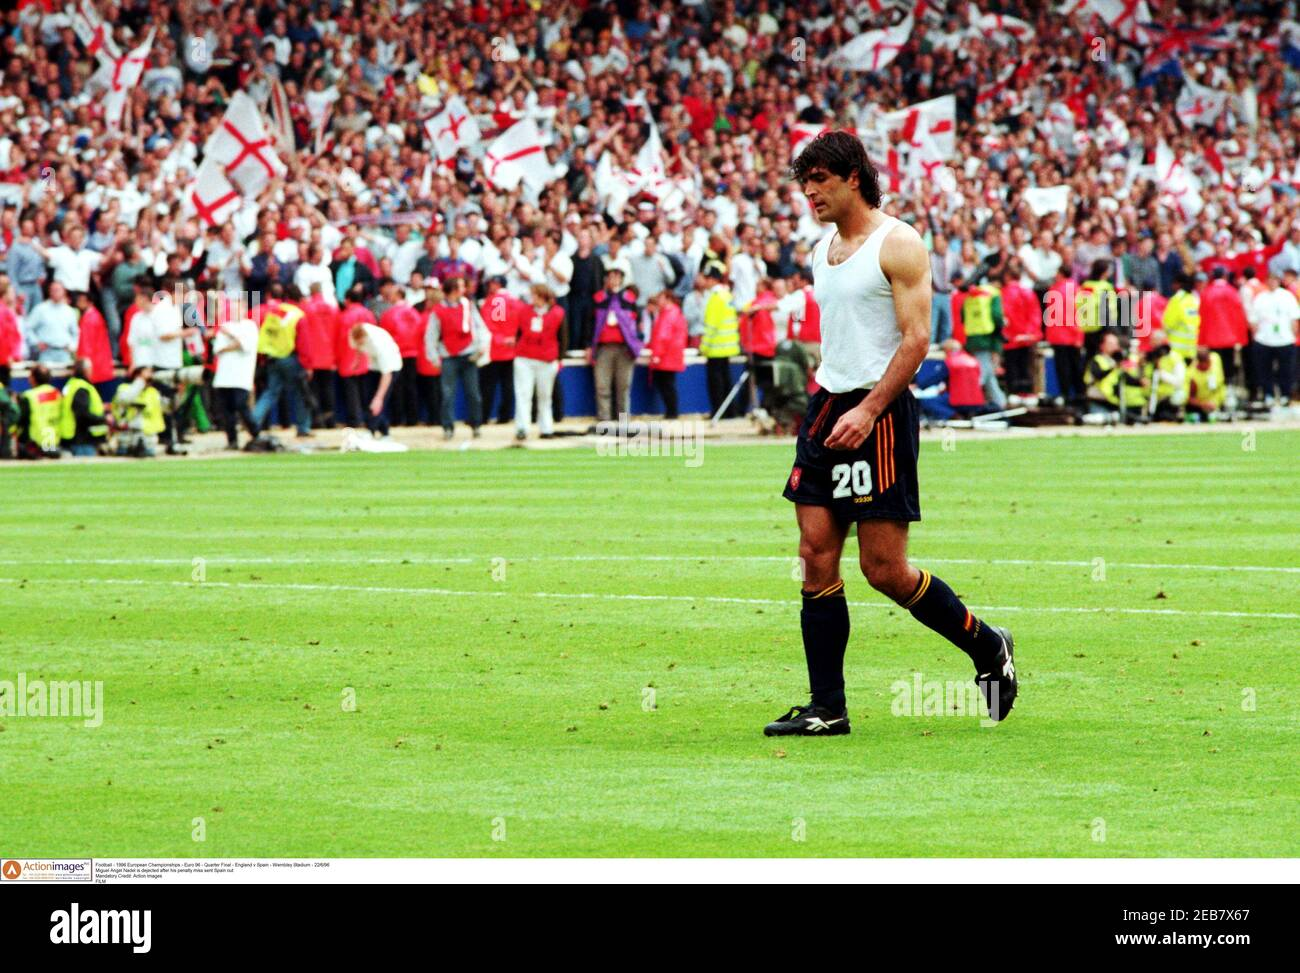 Football - 1996 European Championships - Euro 96 - Quarter Final - England v Spain - Wembley Stadium - 22/6/96  Miguel Angel Nadal is dejected after his penalty miss sent Spain out  Mandatory Credit: Action Images  FILM Stock Photo